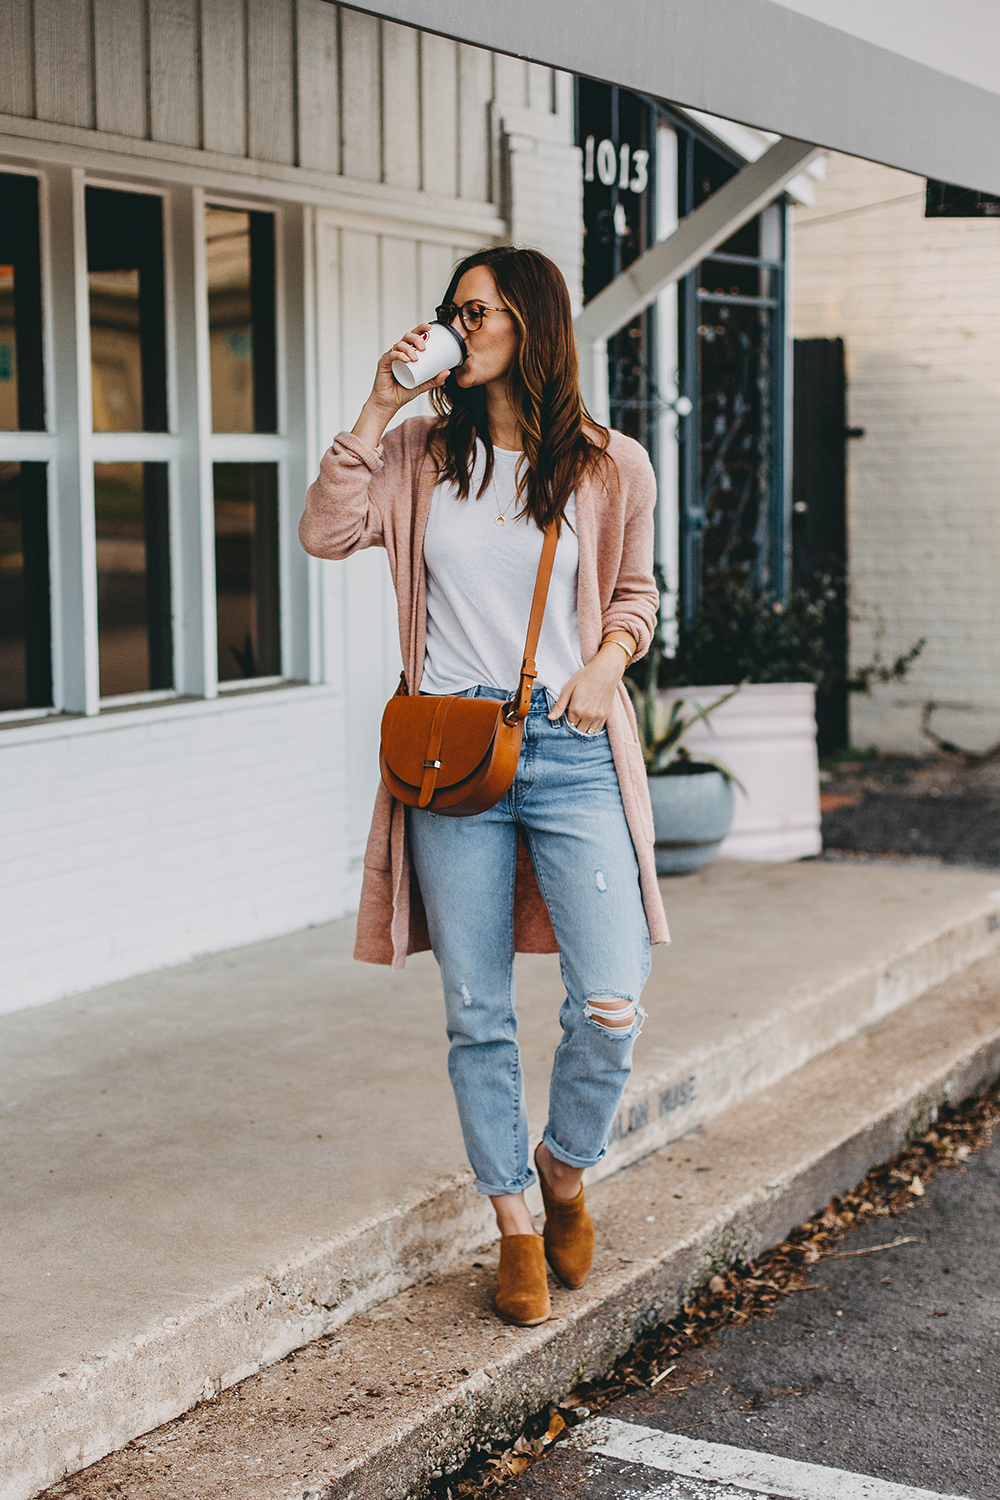 livvyland-blog-olivia-watson-austin-texas-fashion-blogger-spring-transition-wardrobe-pieces-madewell-blush-cardigan-tan-mules-3